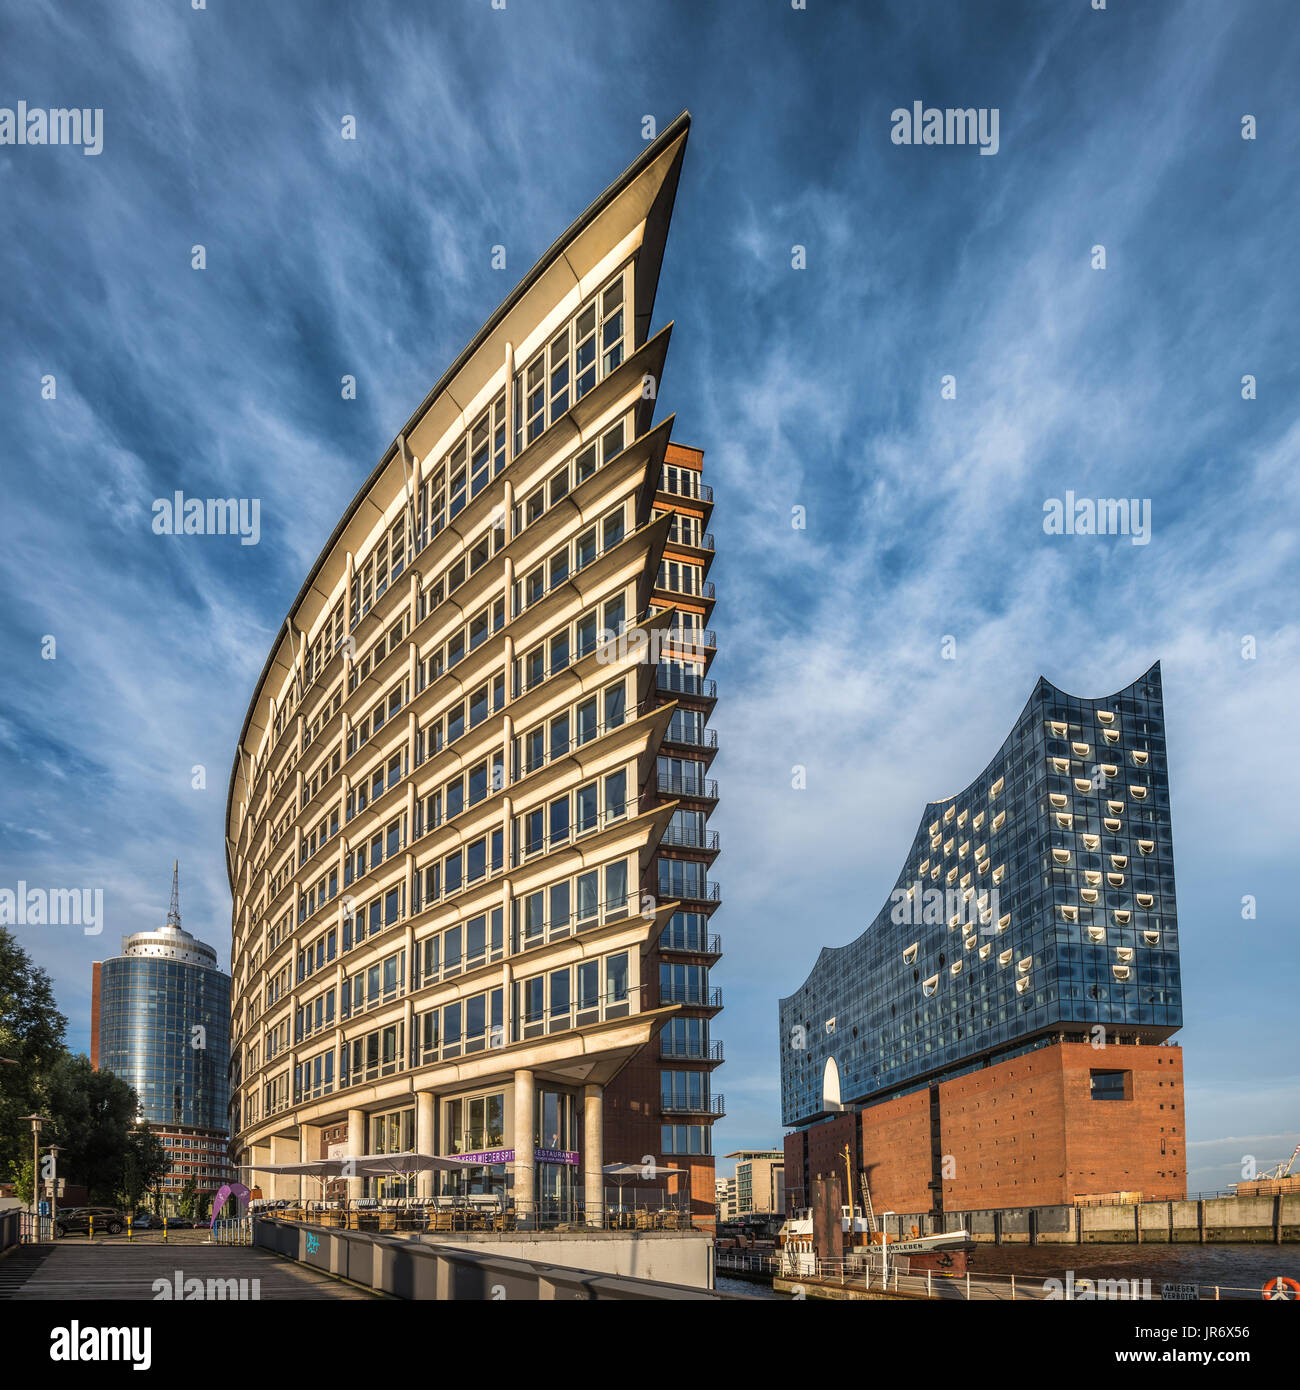 The Hafen City quarter and Elbe Philharmonic Hall in Hamburg, Germany - Stock Image